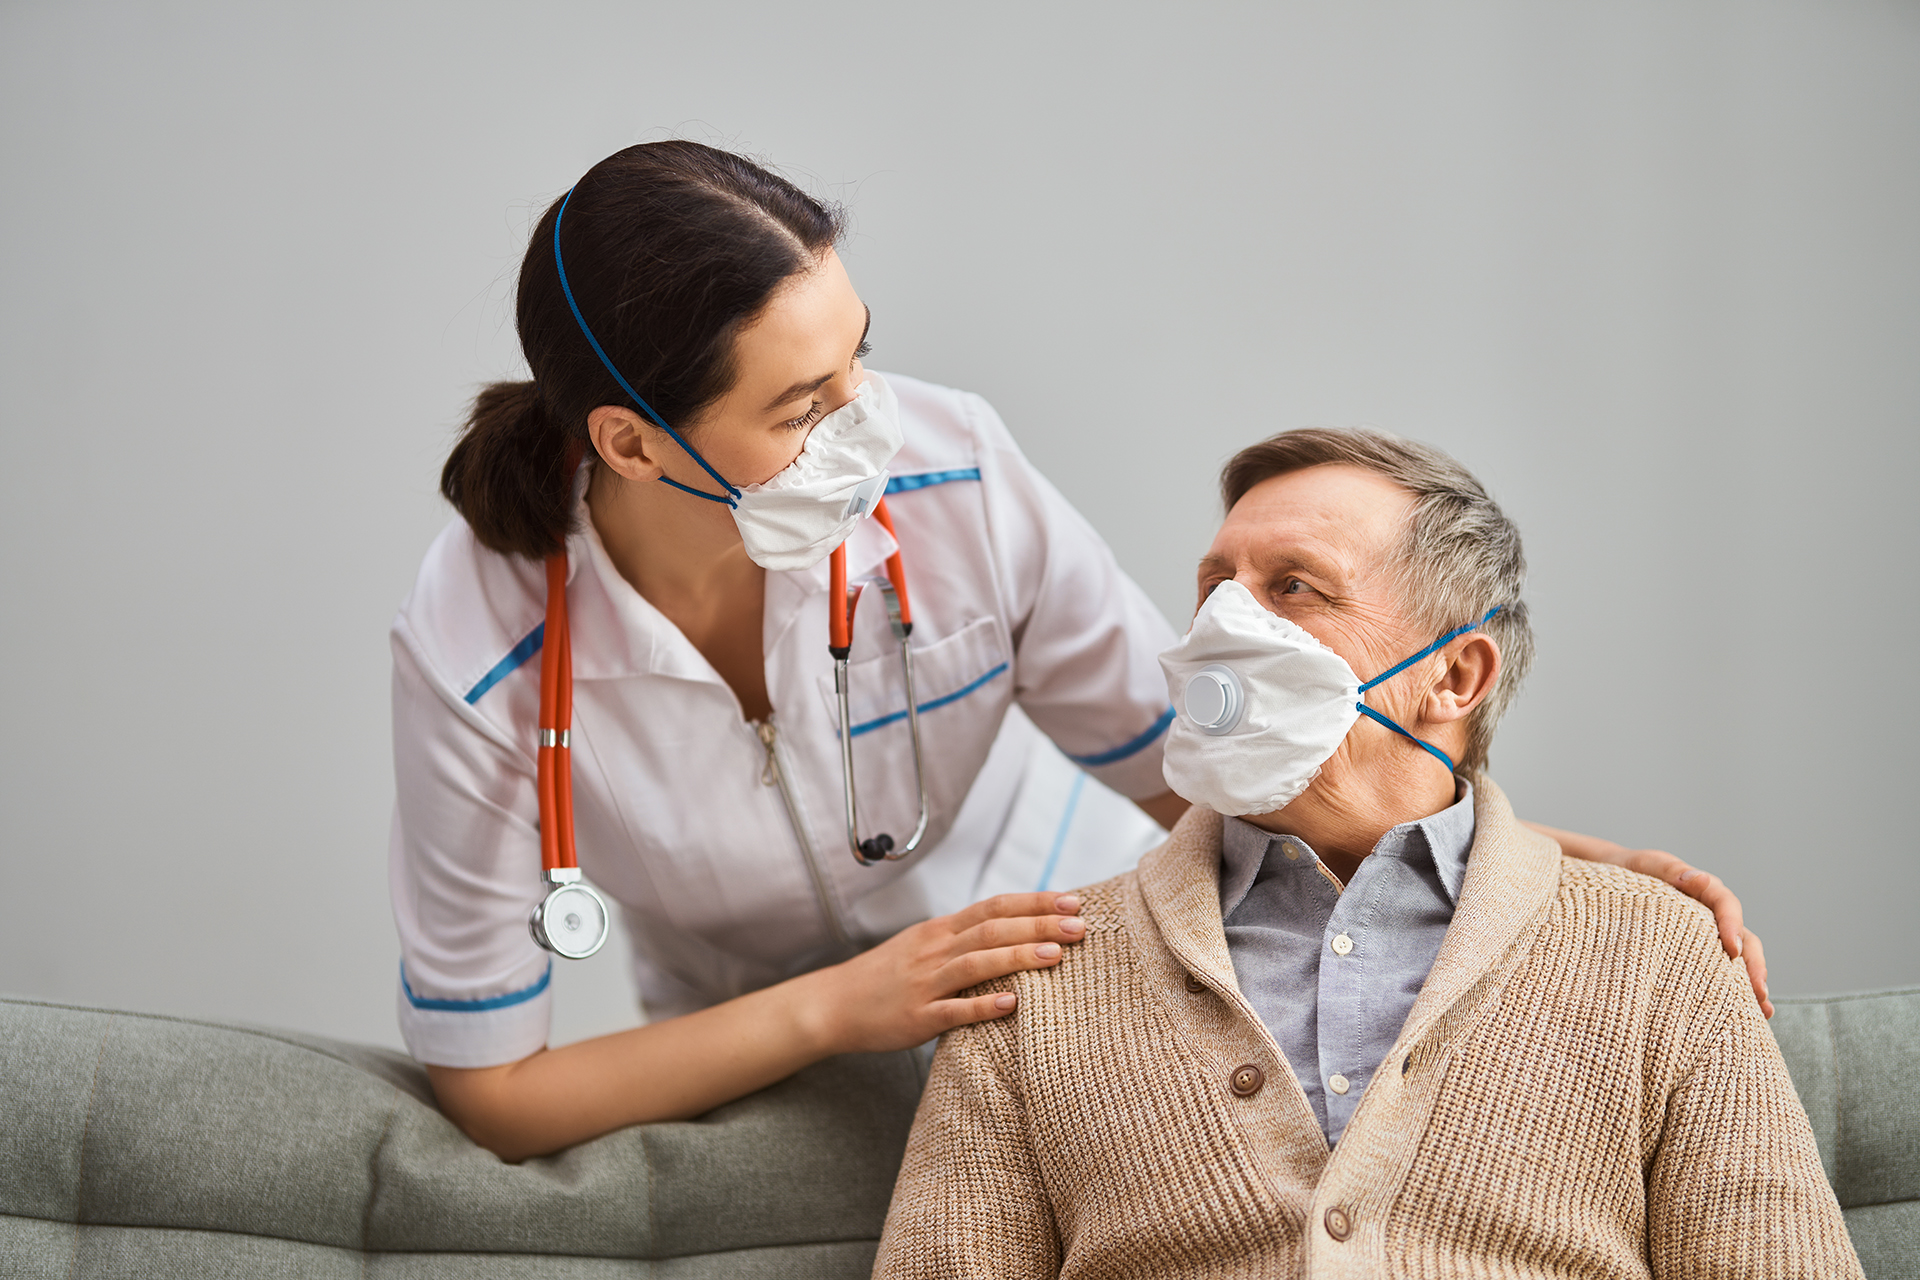 Caregiver talks to elderly patient during COVID-19 | Featured image for INFECTION CONTROL TRAINING ACT - SKILL SETS.